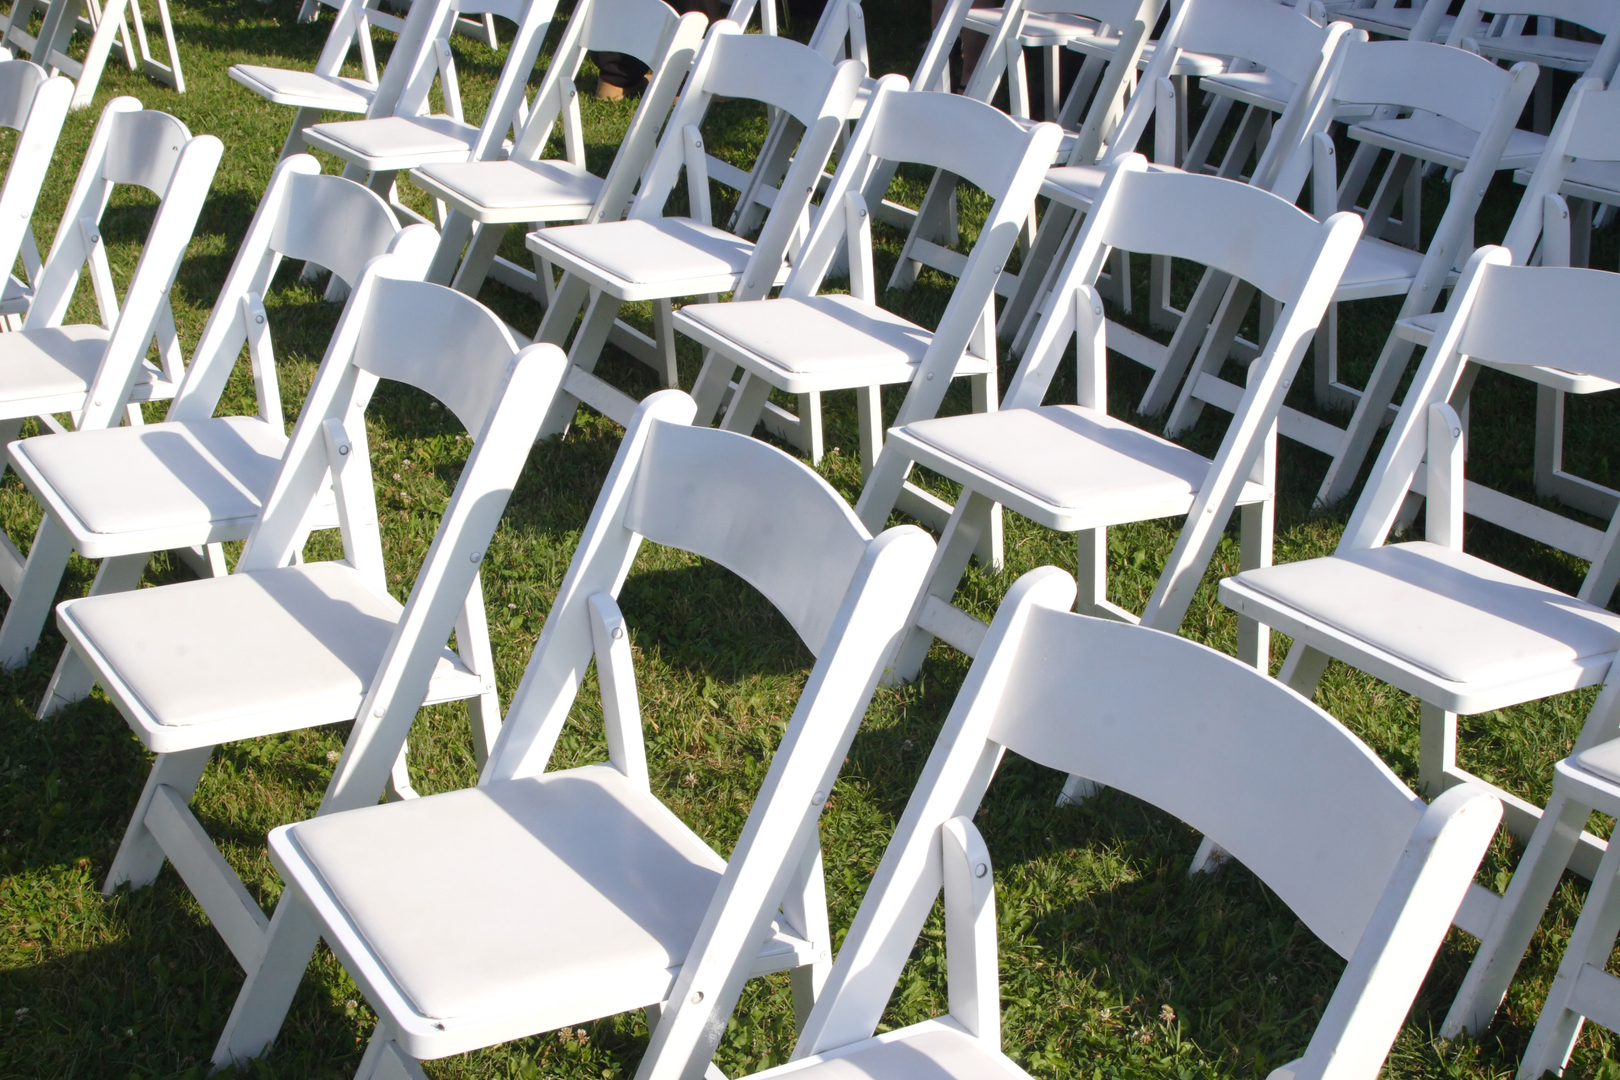 Folding chair covers wholesale under 1 - Folding Chair Covers Wholesale Under 1 43